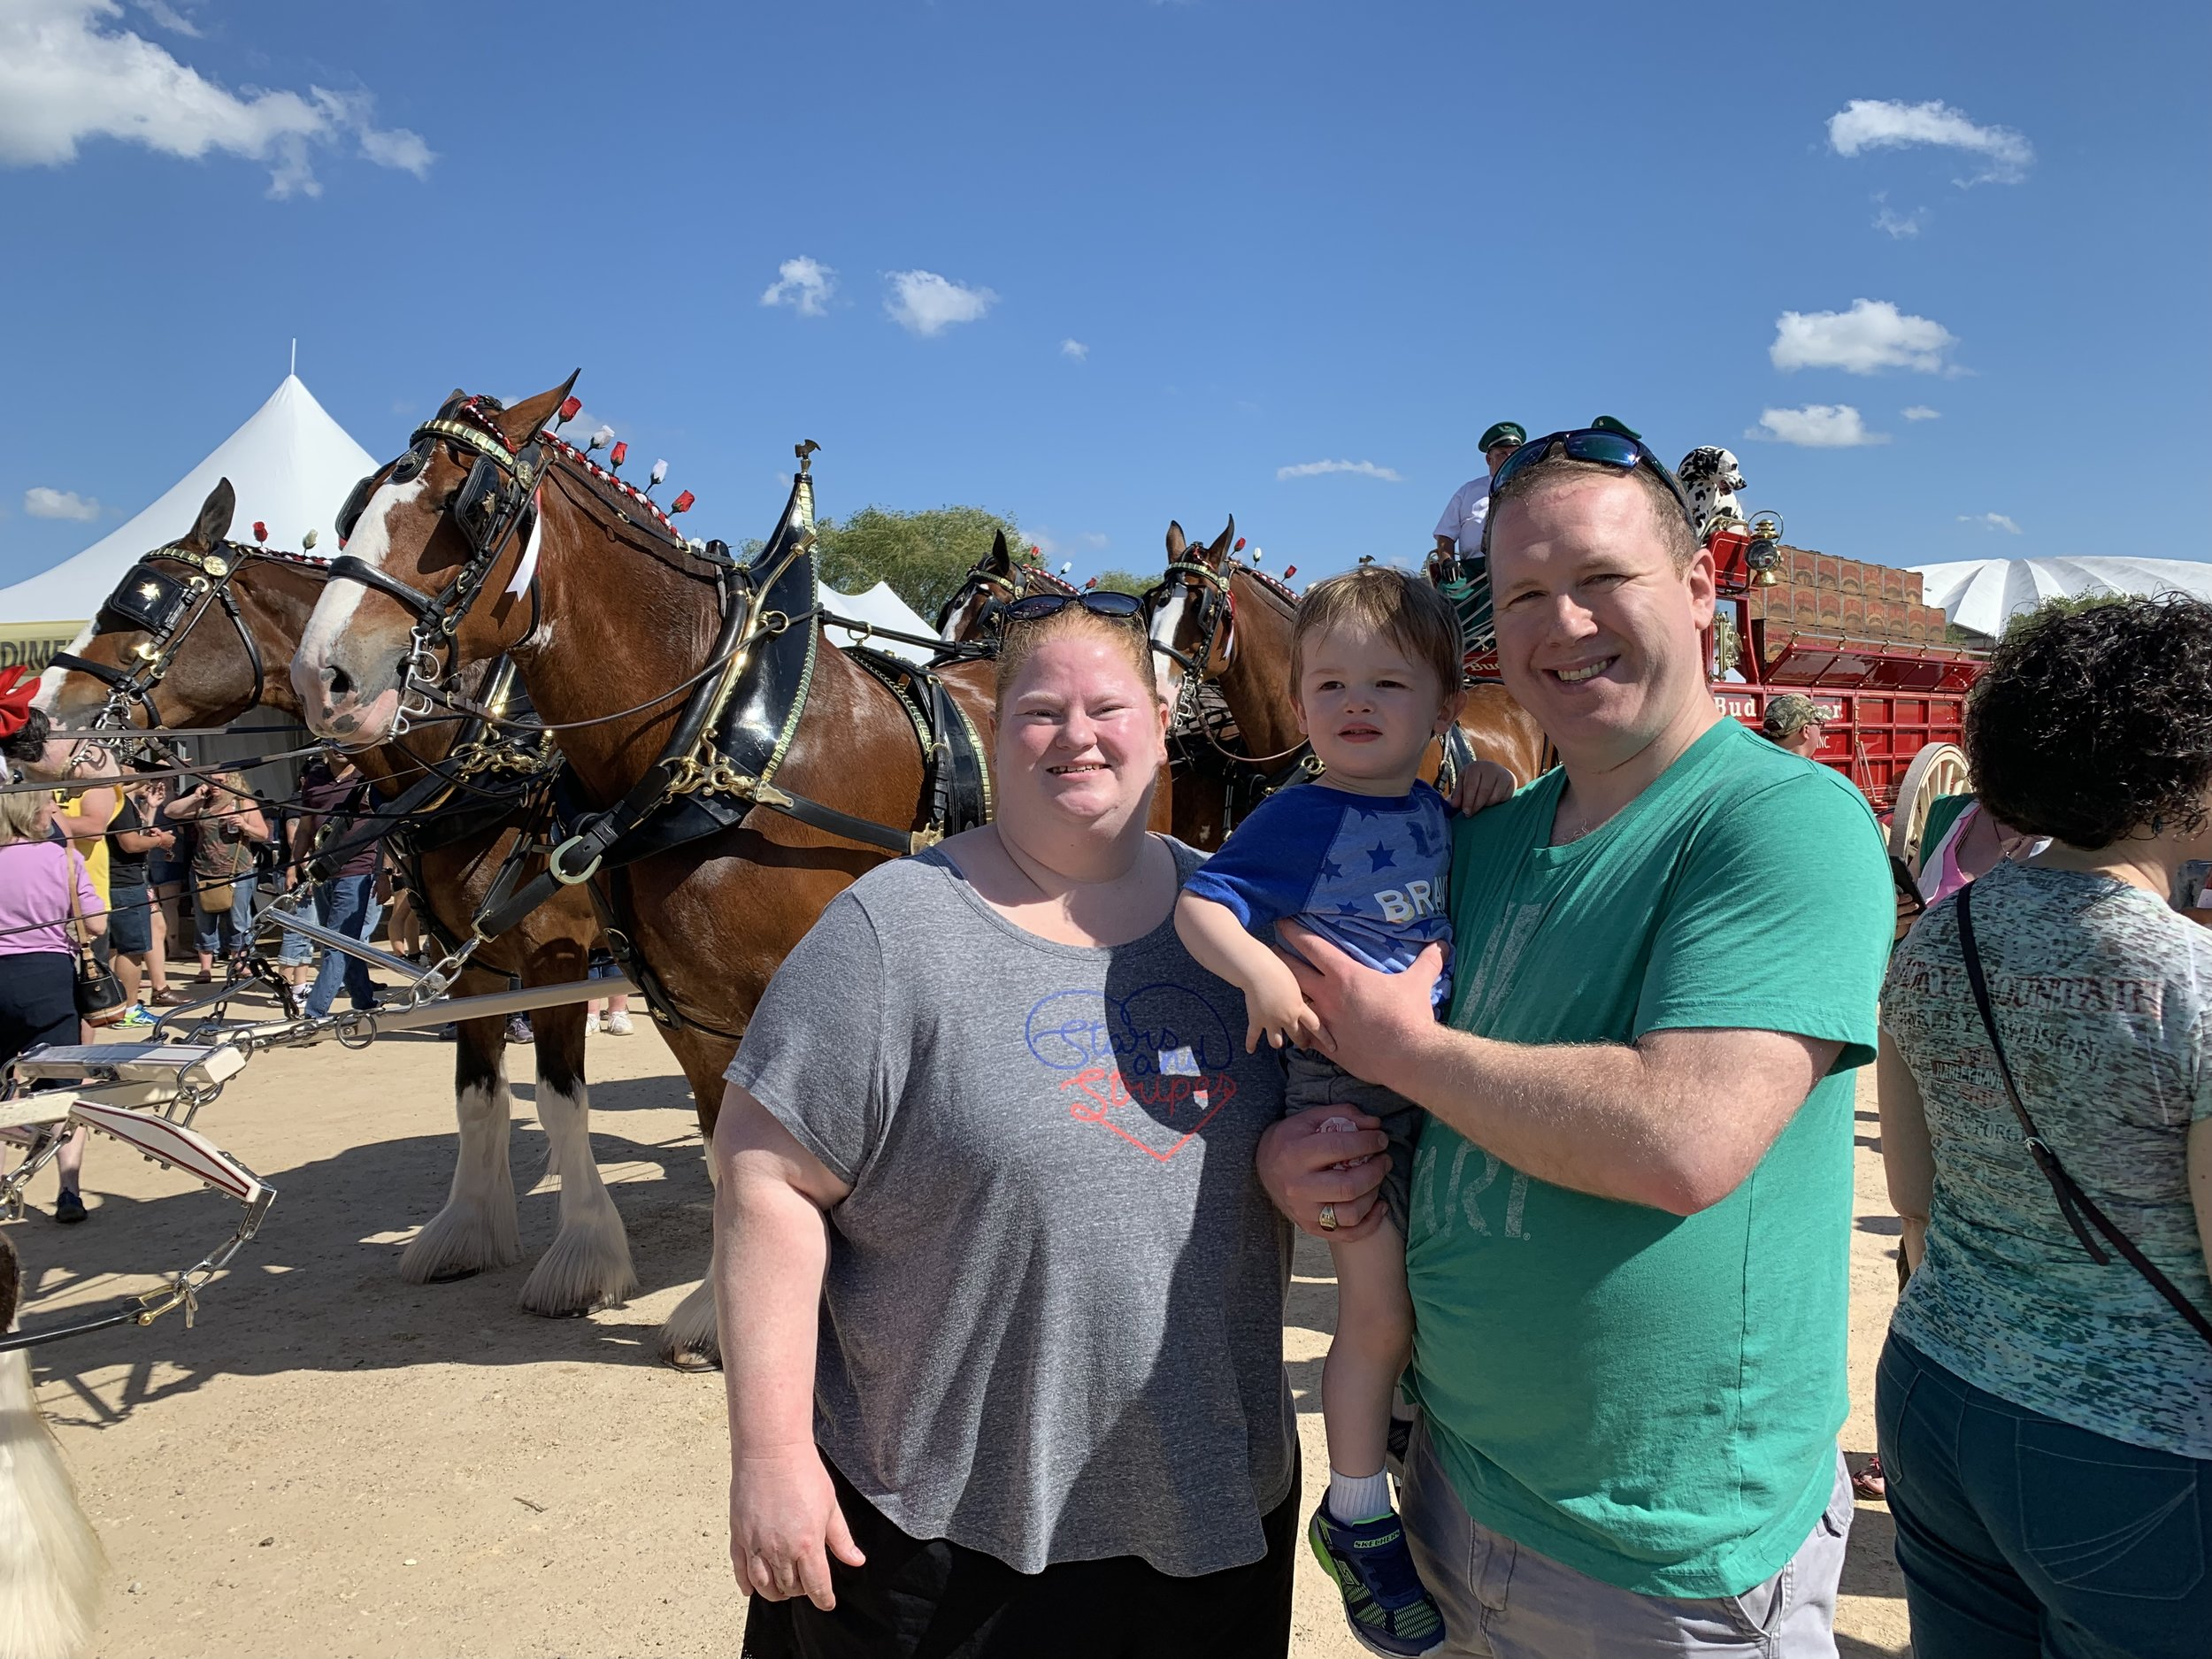 Getting to see the beautiful Clydesdale horses at Brat Fest